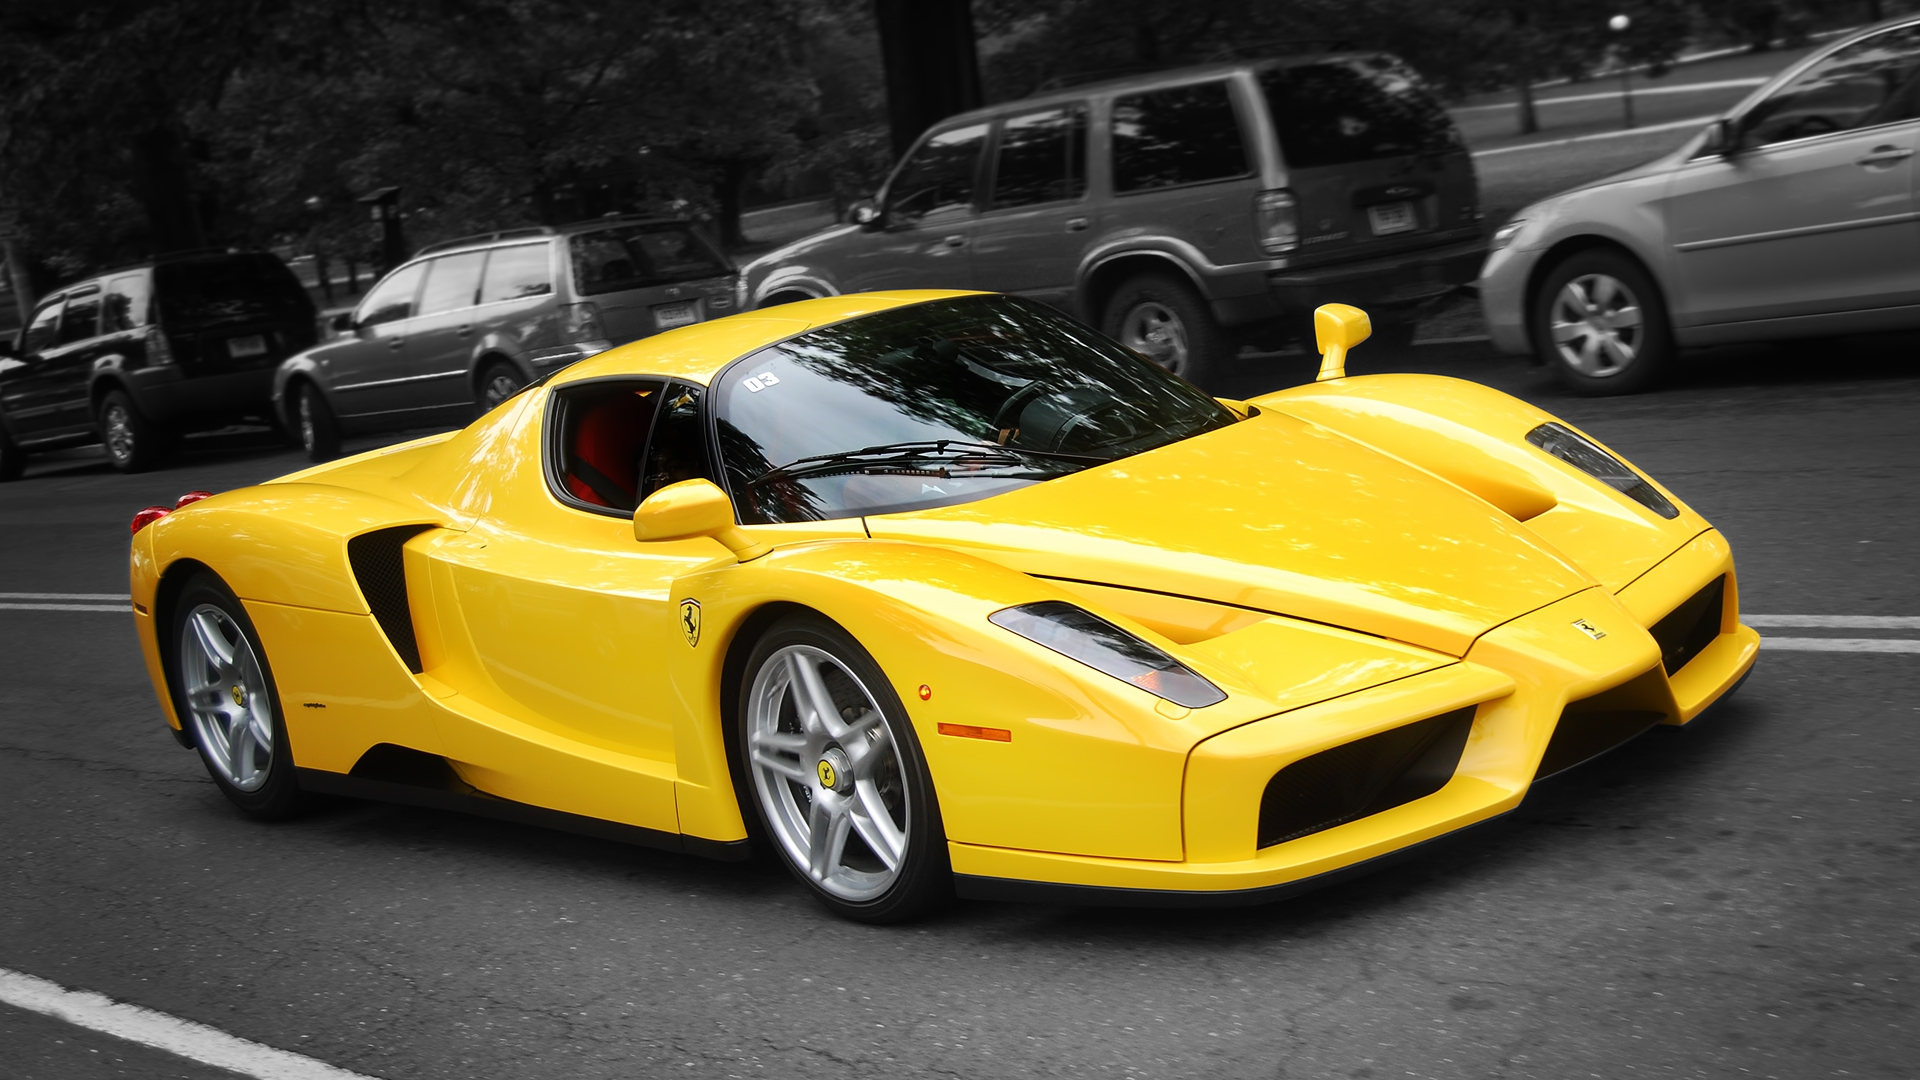 Ferrari Enzo Yellow Color Wallpaper Hd Widescreen